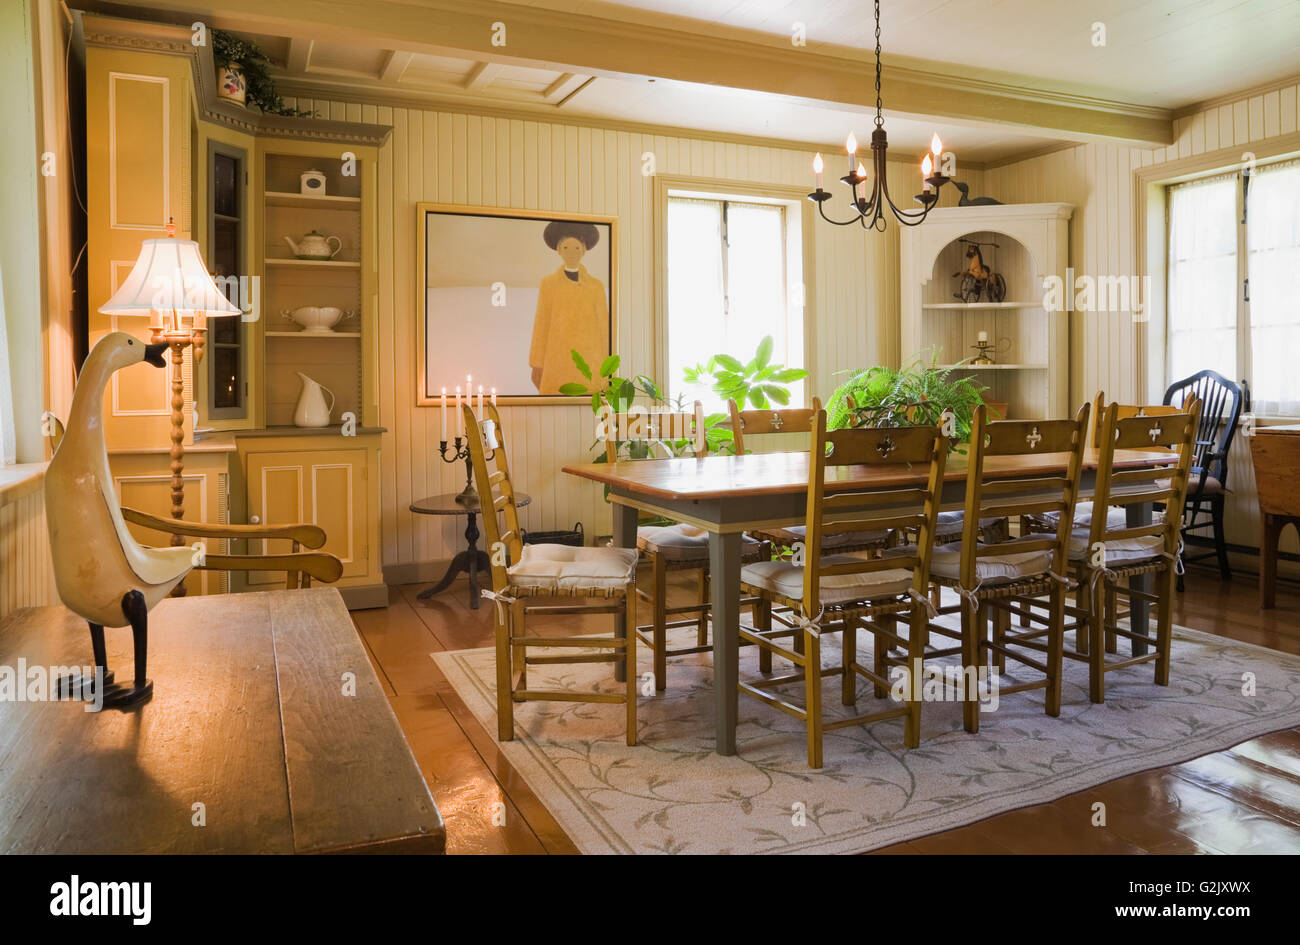 Antique wooden table chairs in dining room inside old reconstructed ...